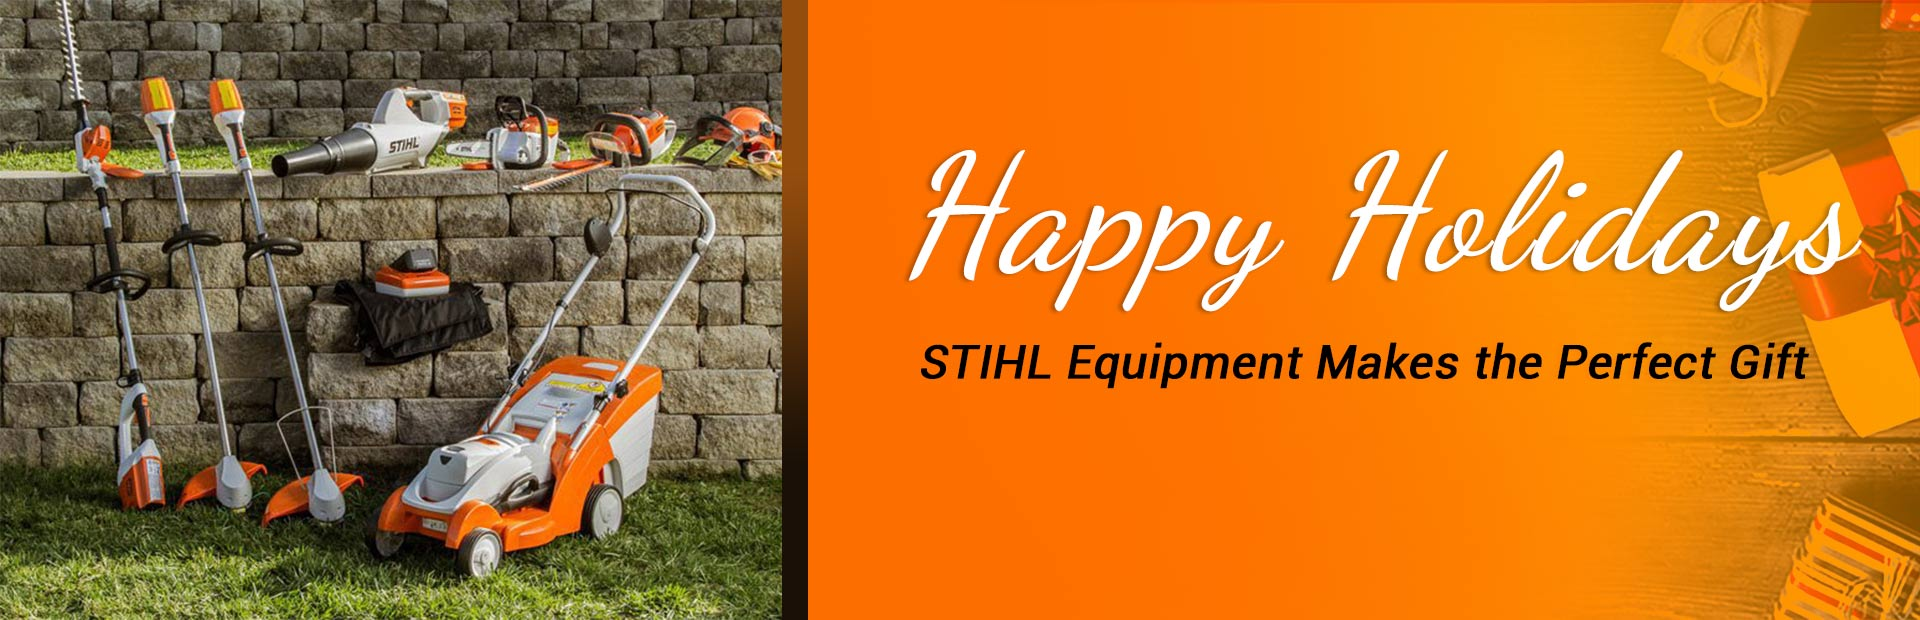 Happy holidays! STIHL equipment makes the perfect gift.